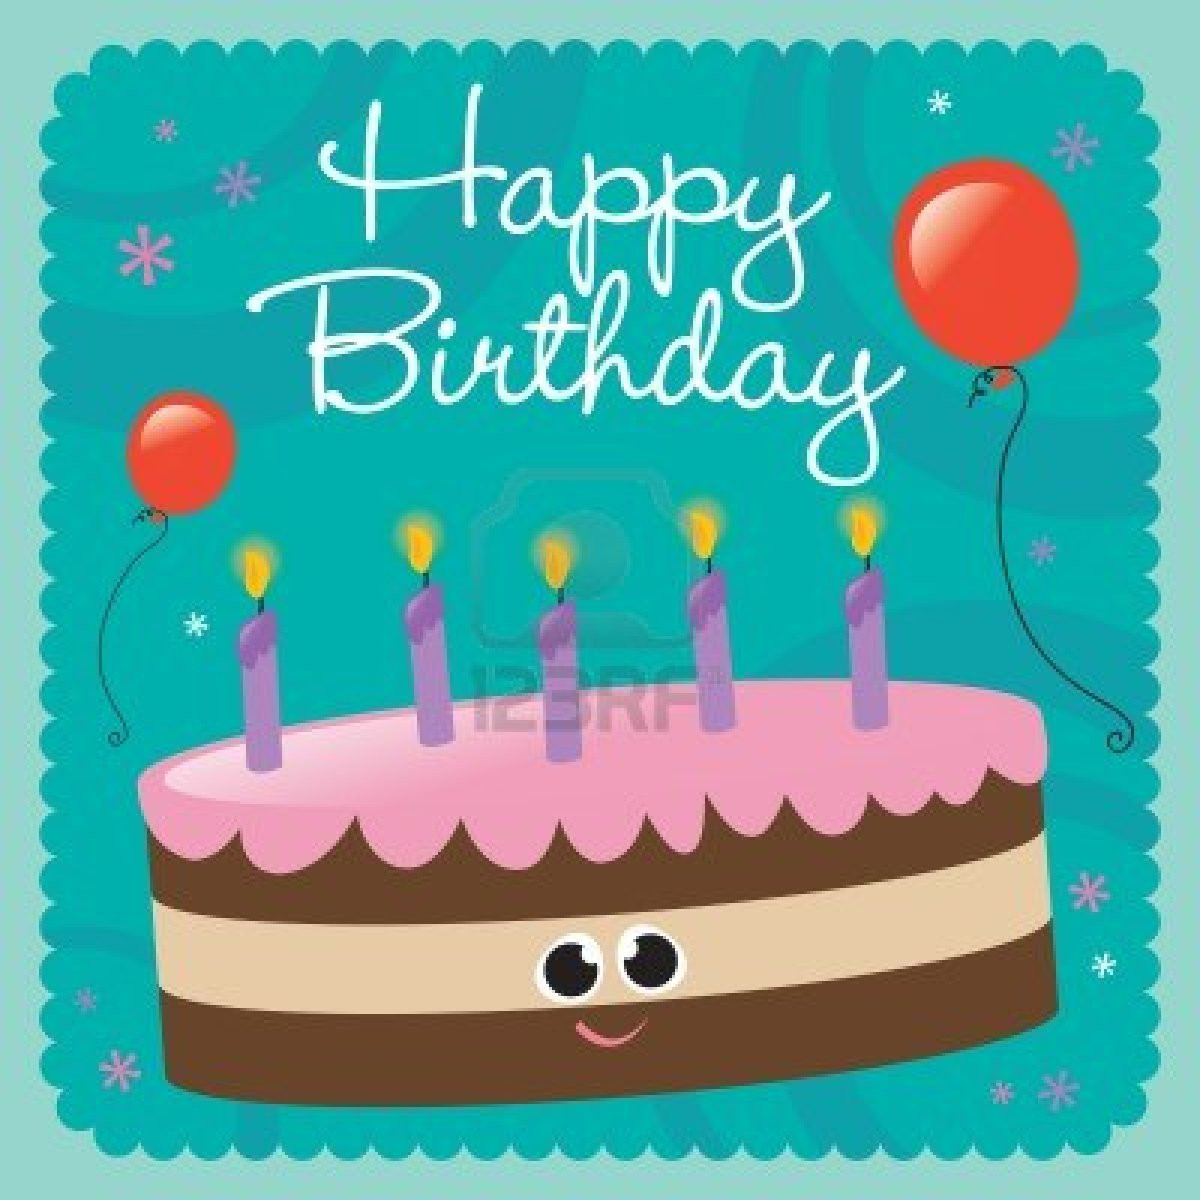 Free Download Birthday Card  35 Happy Birthday Cards Free To Download – The WoW Style